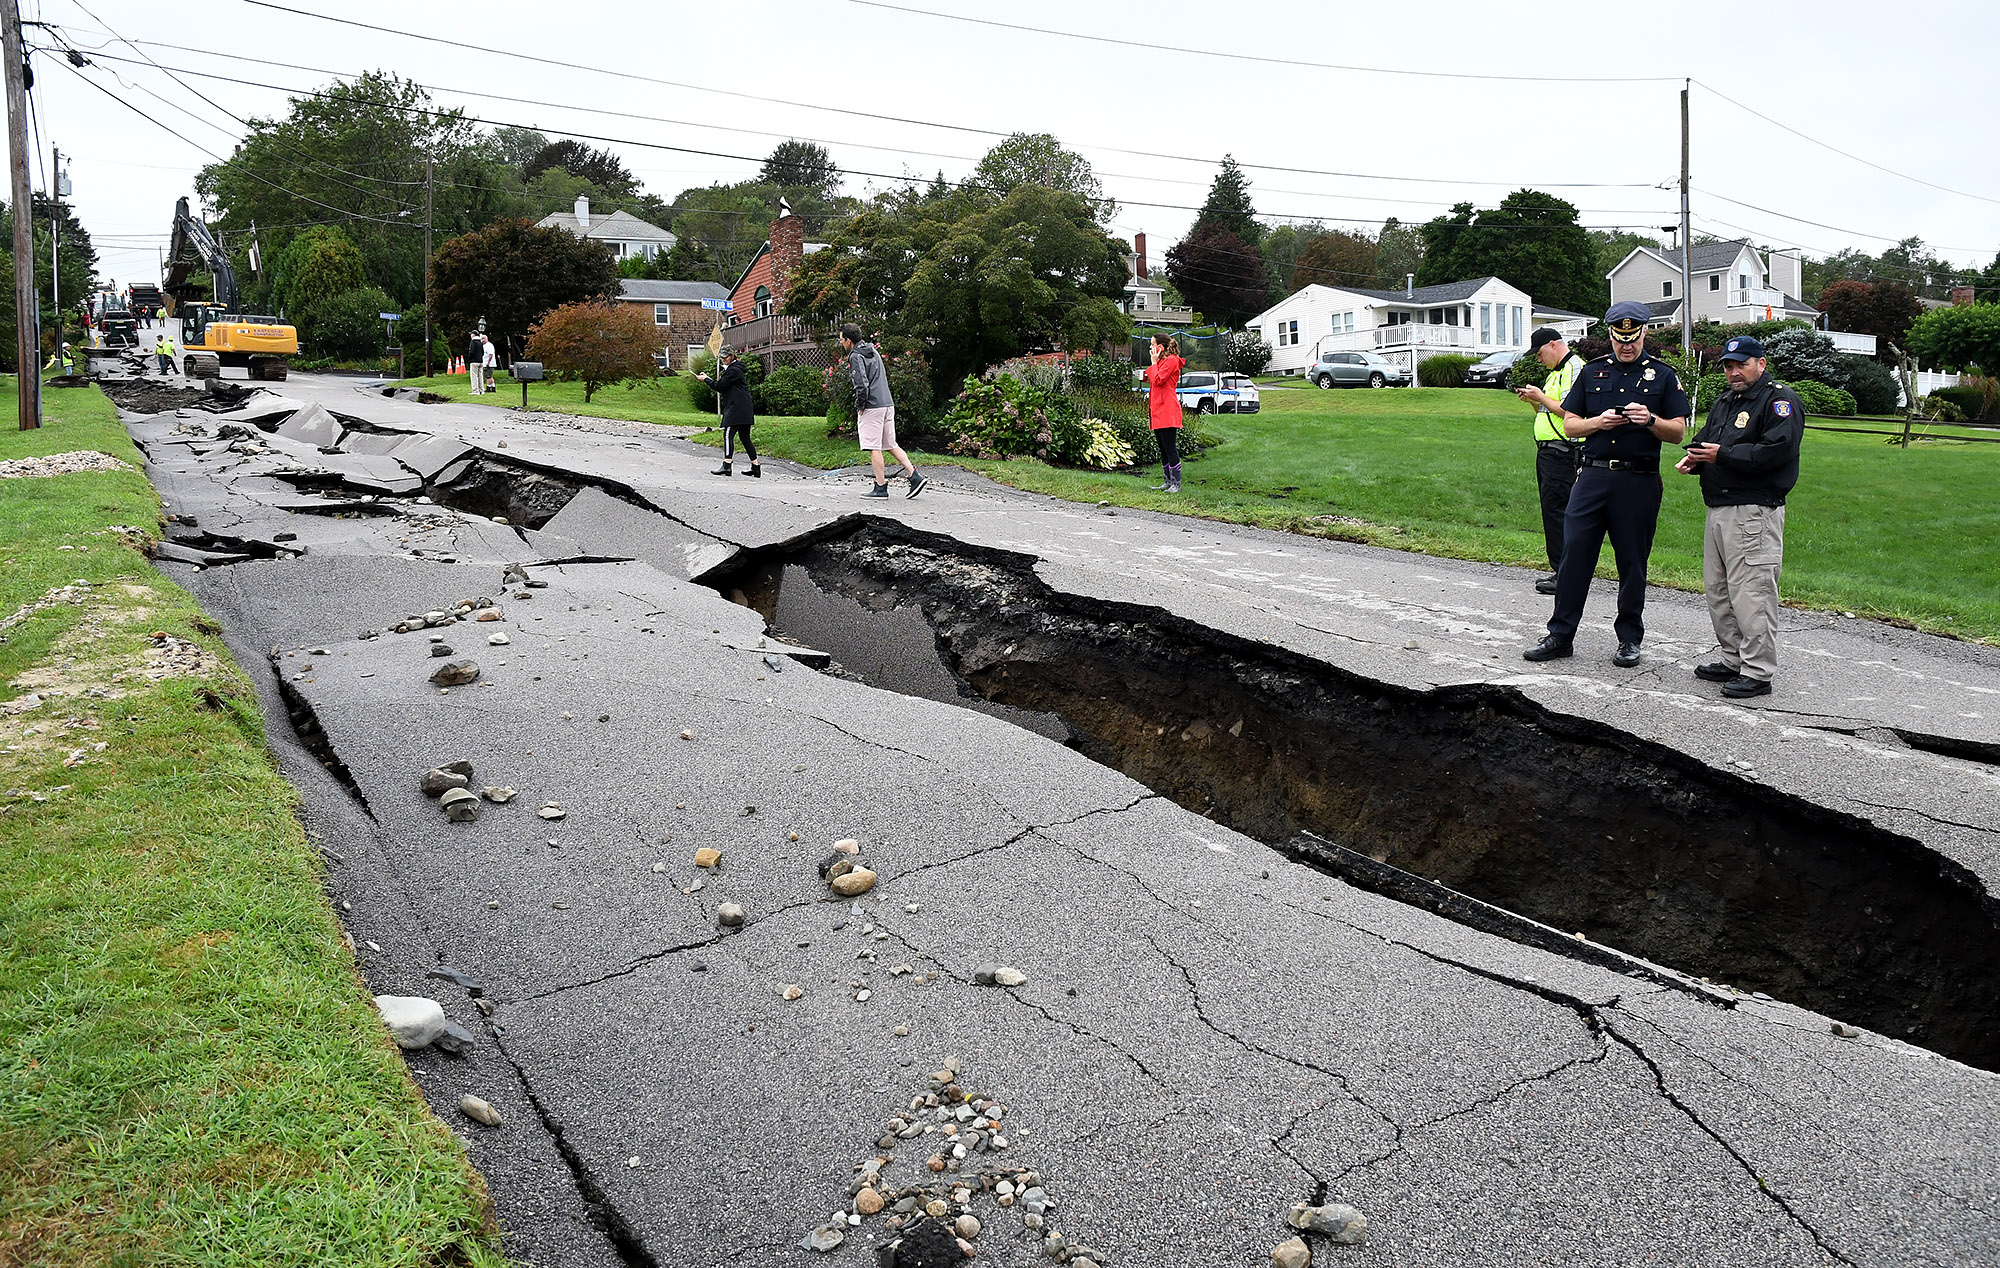 Fairview Lane in Portsmouth, RI lays crumbled Thursday after the remnants of Hurricane Ida passed over the area Wednesday night and early Thursday morning dumping several inches of rain.